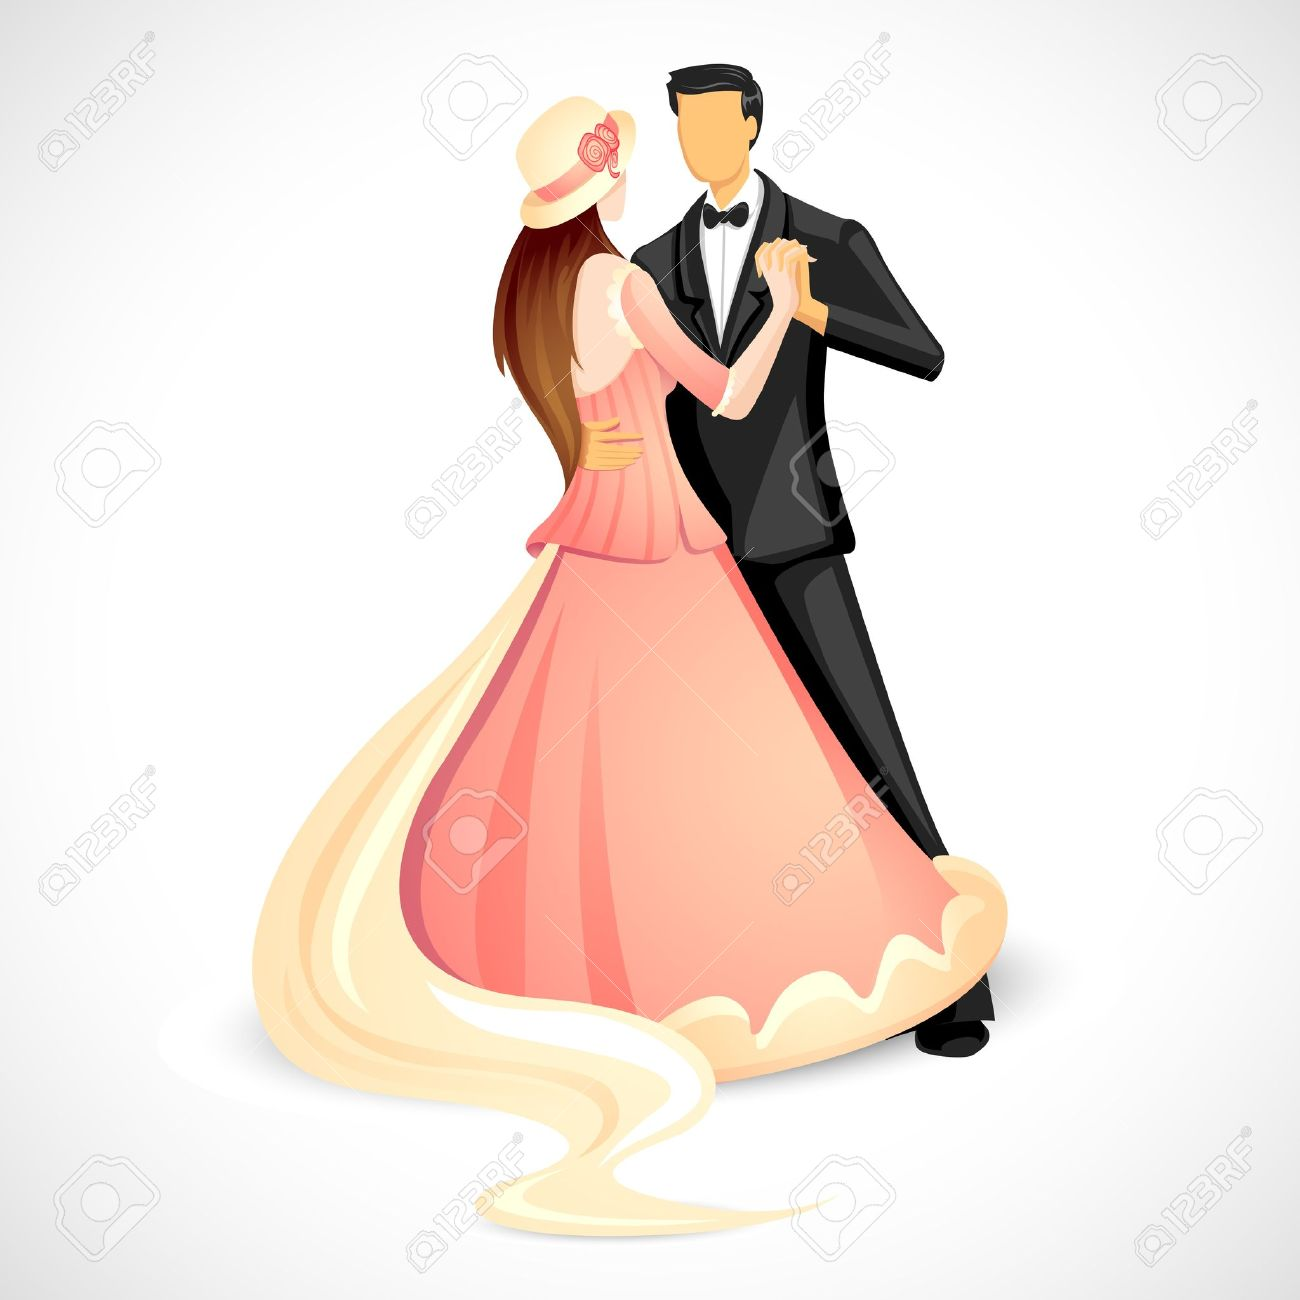 Couple Clipart at GetDrawings.com.